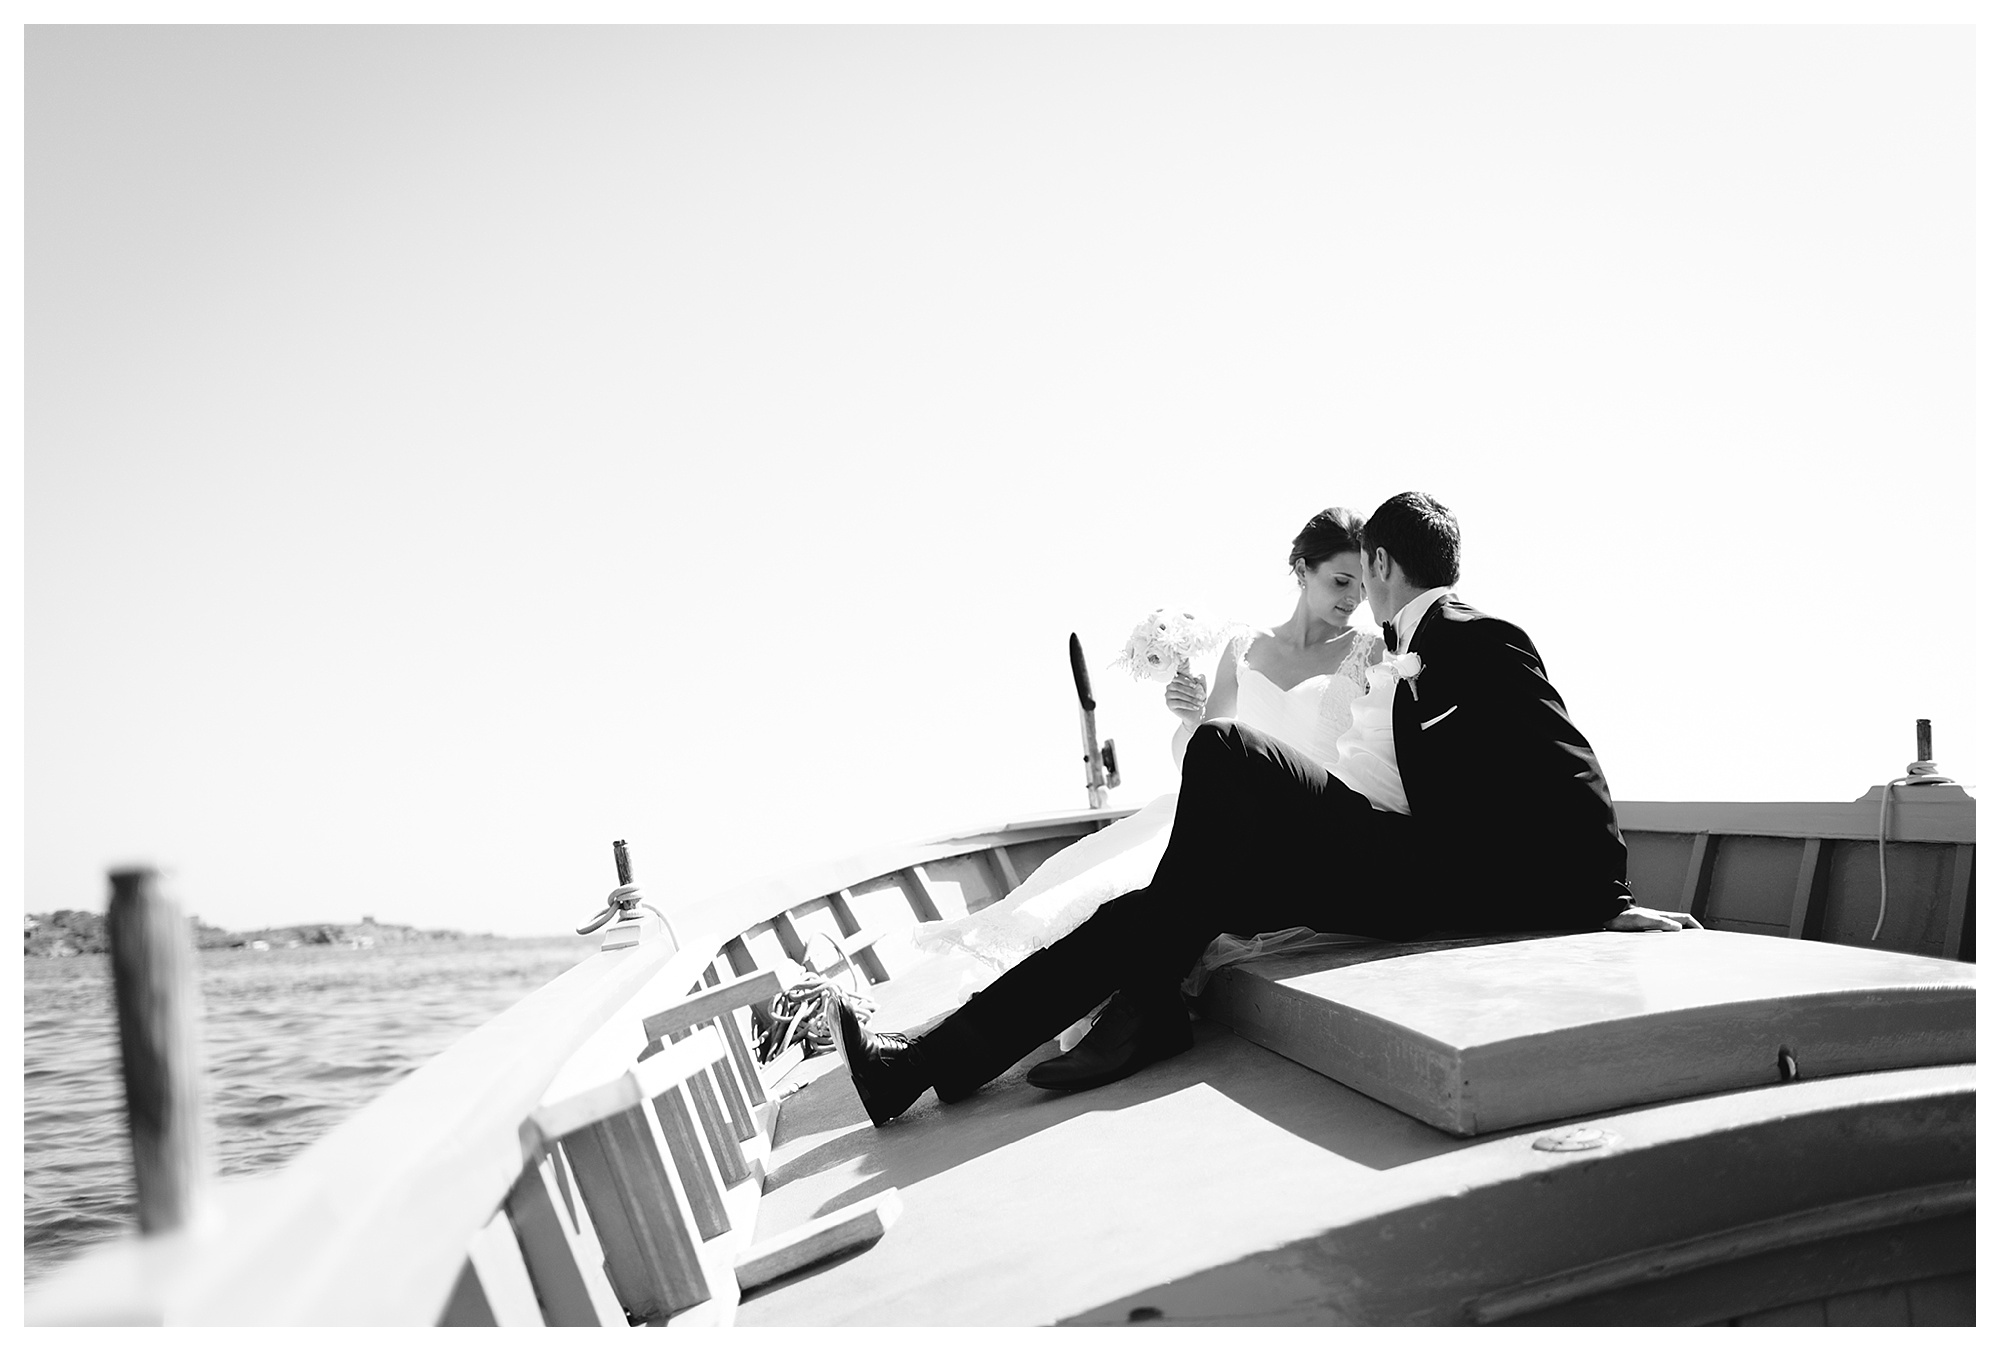 Fotograf Konstanz - Wedding Spain Cadaques Elmar Feuerbacher Photography 26 - Als Destination Wedding Fotograf in Cadaqués, Spanien  - 26 -